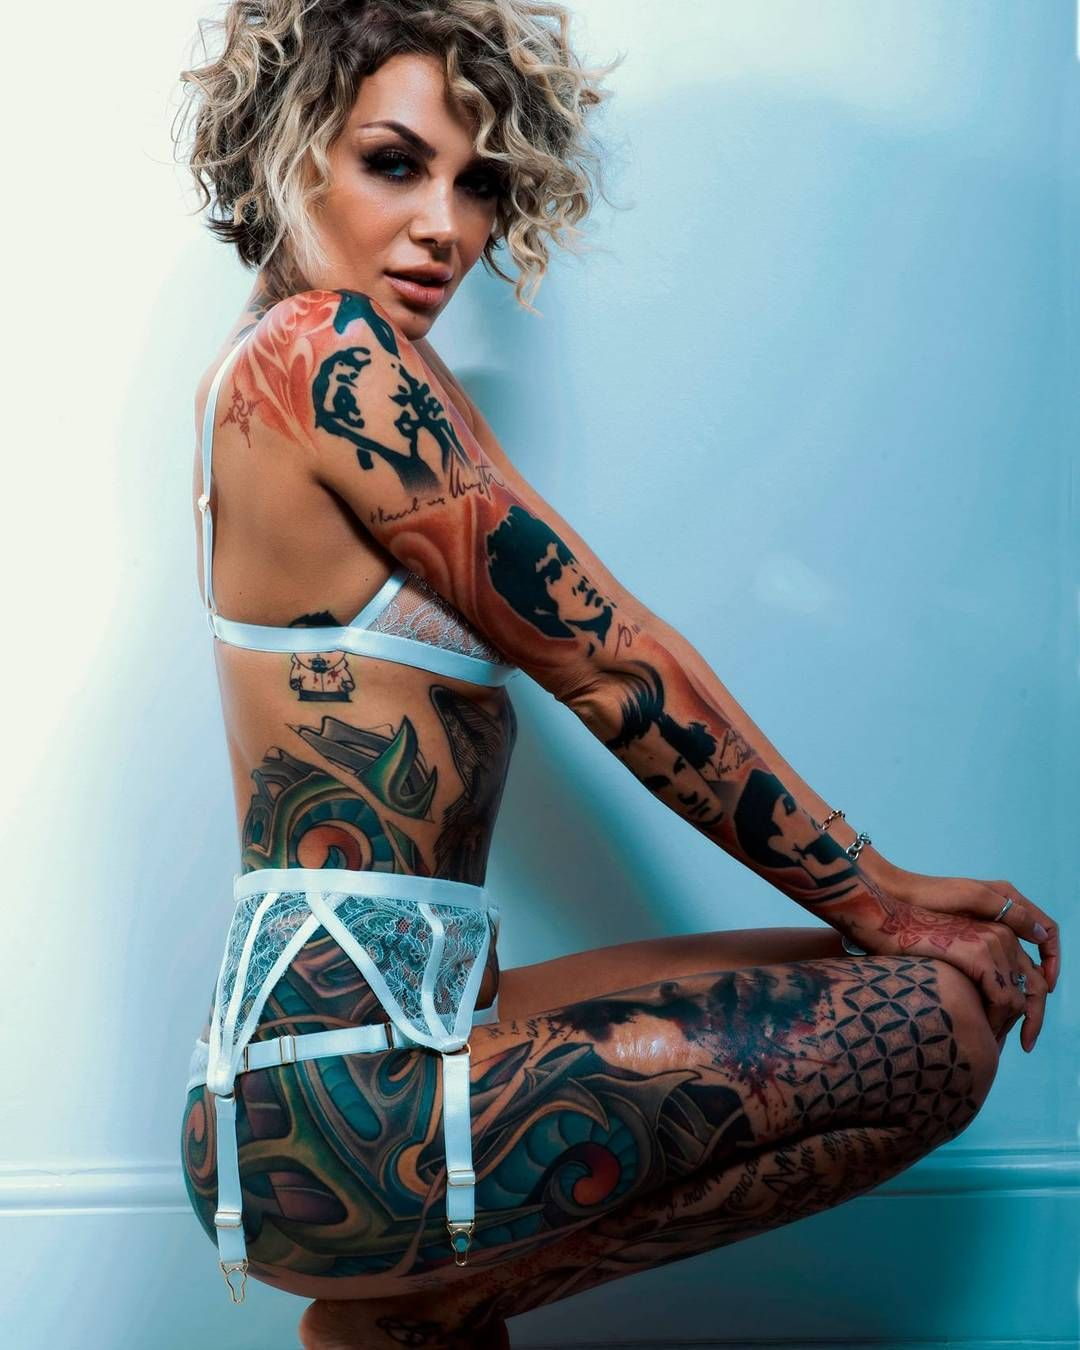 Pretty tattoo model Eric Liyah Kane, photo by Maffster from